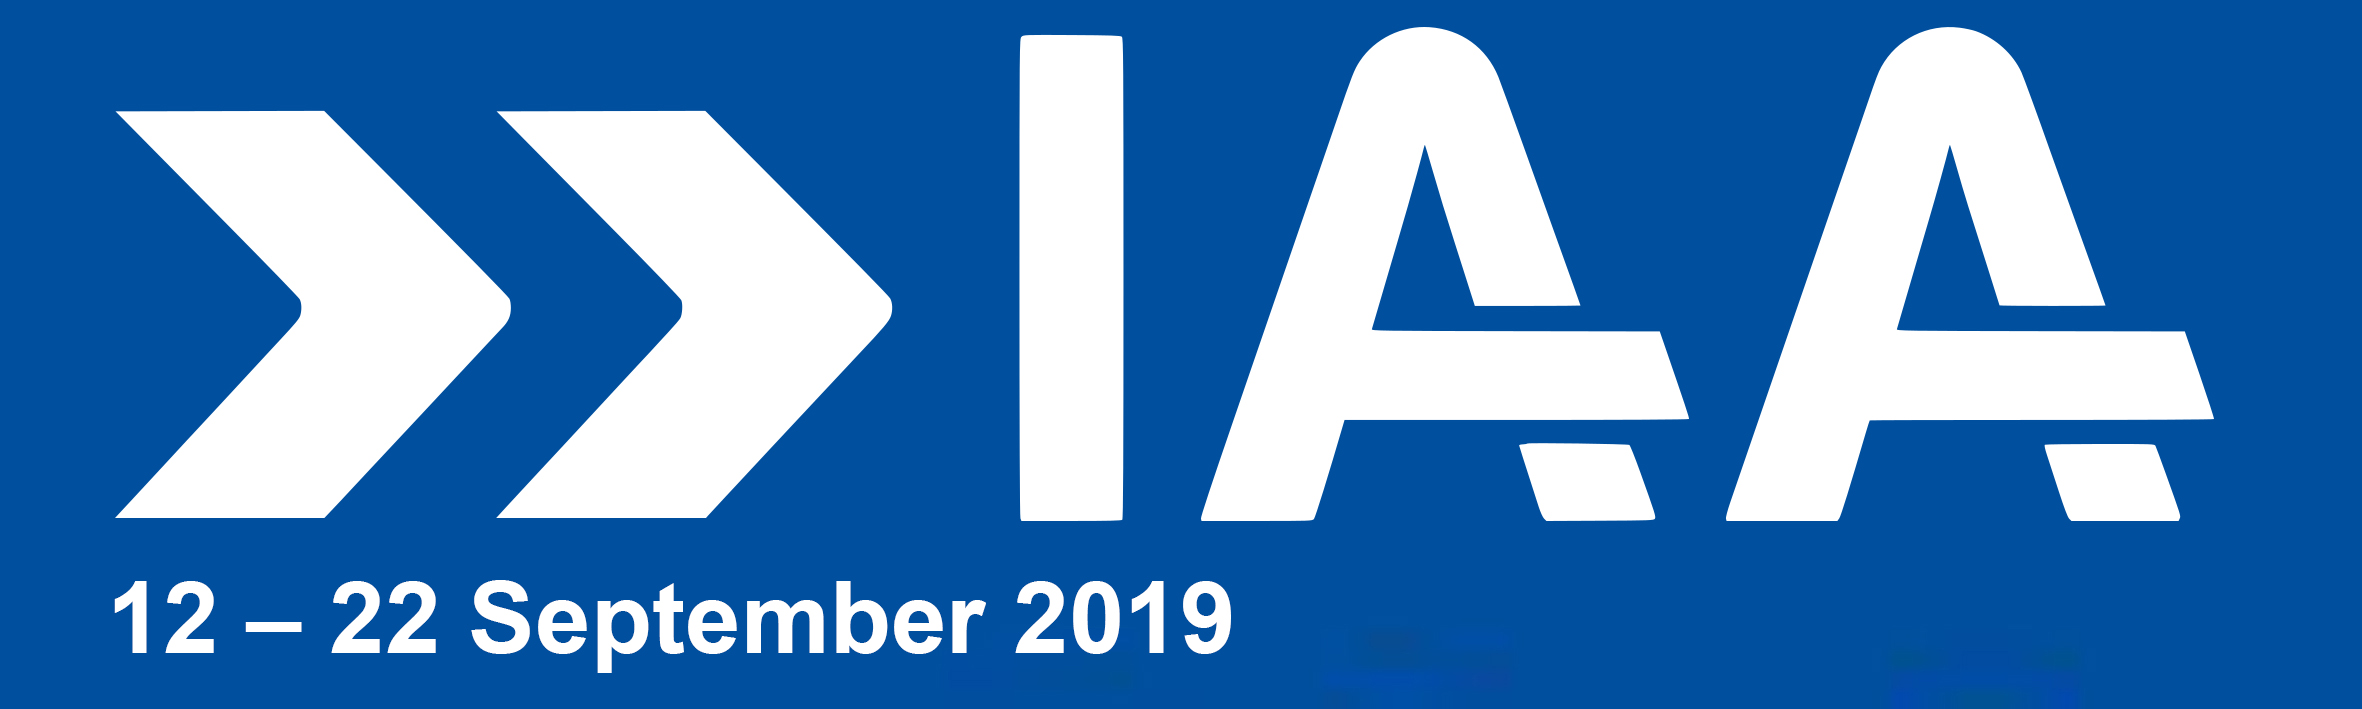 Le Salon Automobile International IAA se tiendra du 14 au 22 septembre 2019 à Francfort !